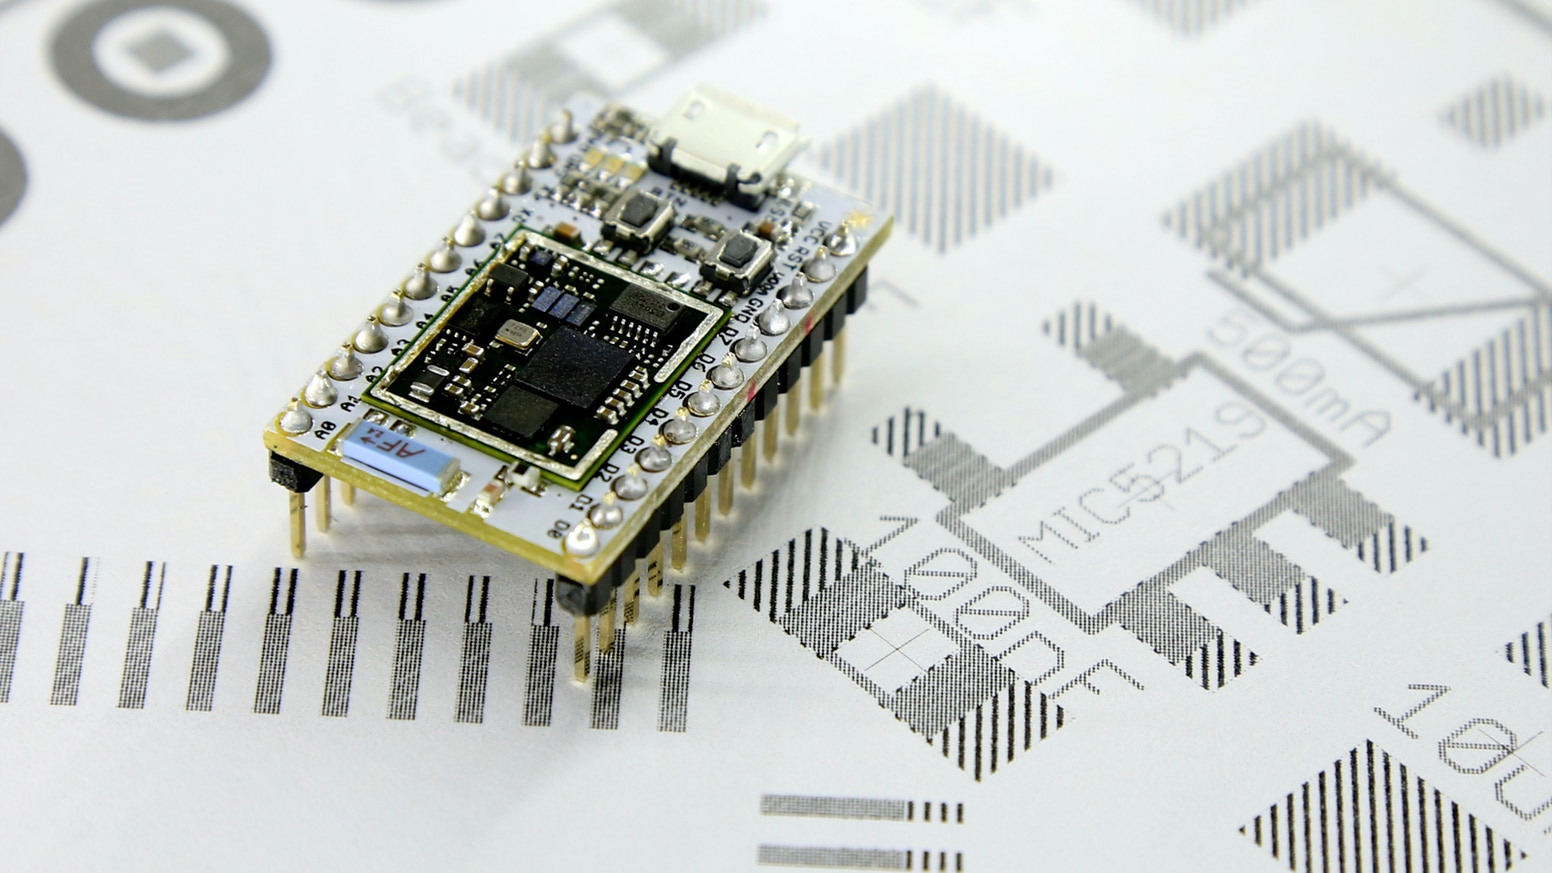 A tiny Wi-Fi development board. Arduino + Wi-Fi + ARM Cortex M3  + wireless programming + REST API = awesome.